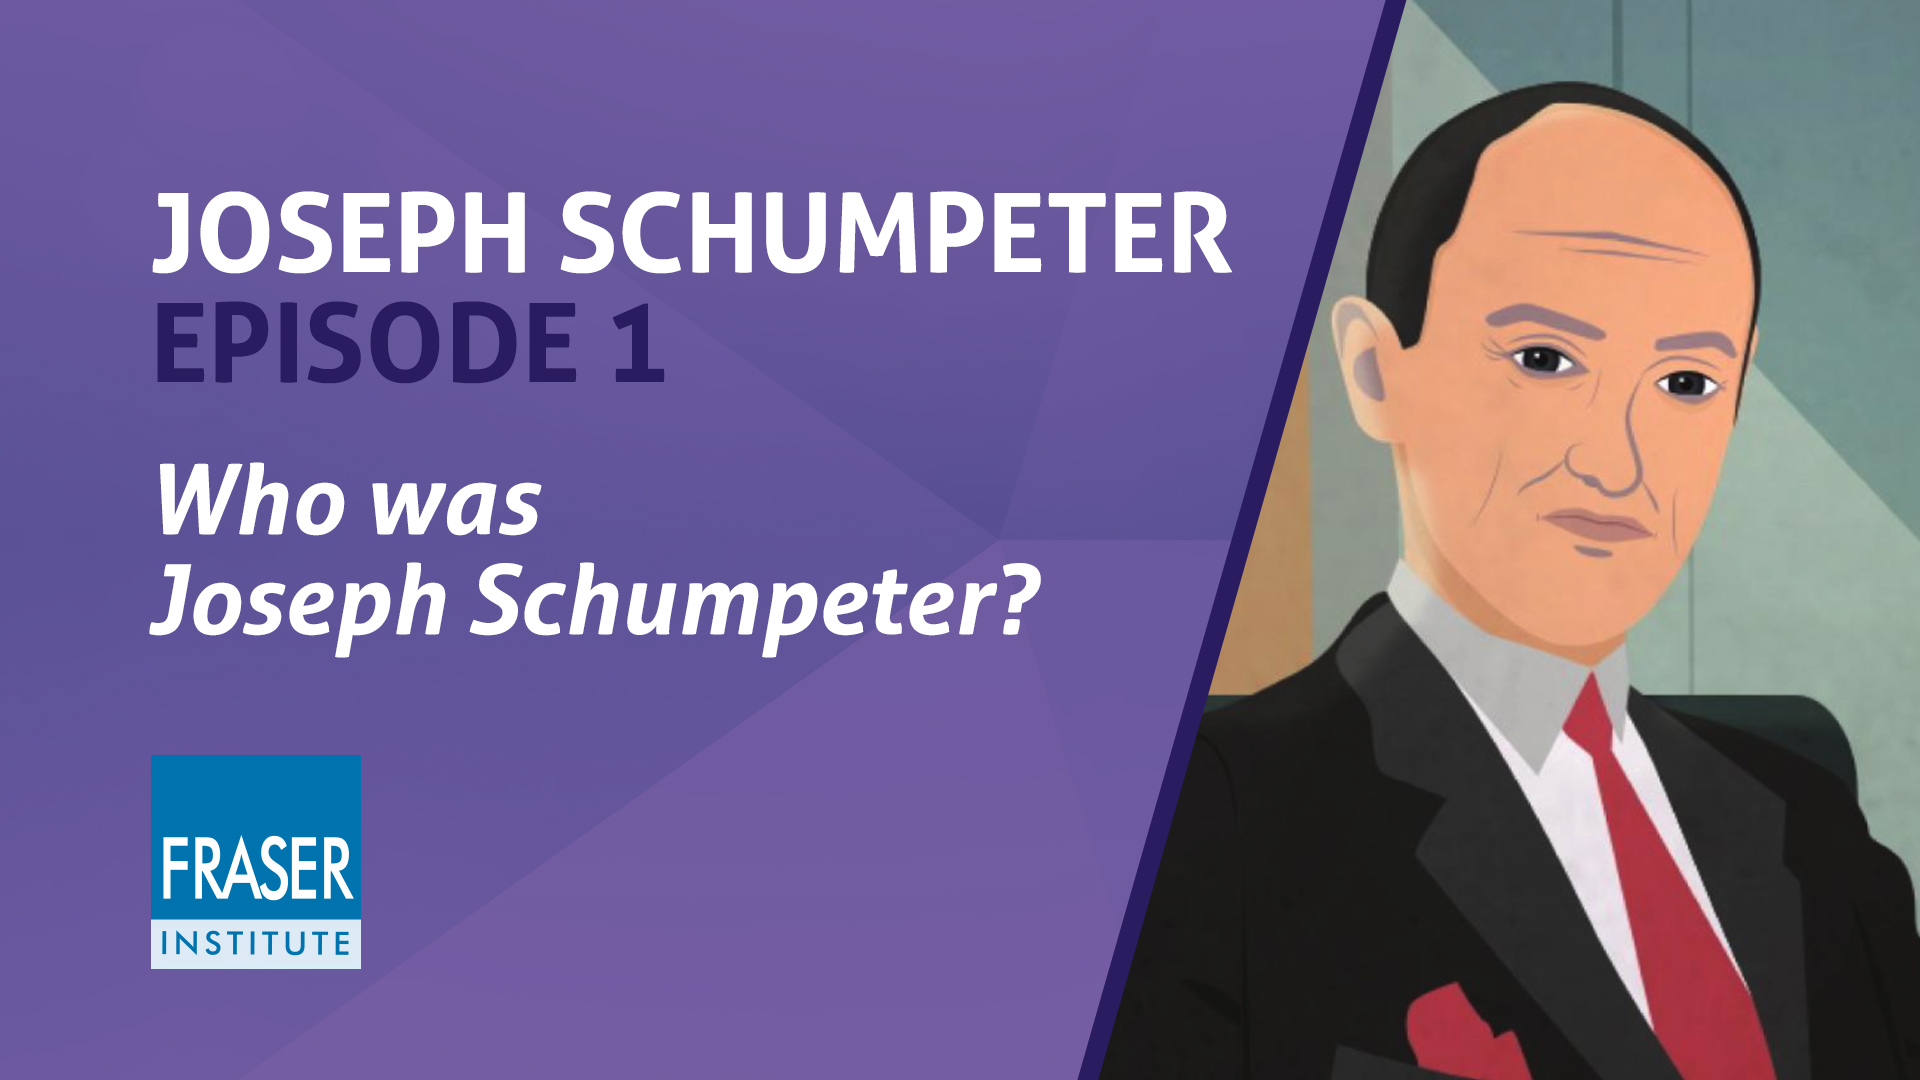 Who was Joseph Schumpeter?